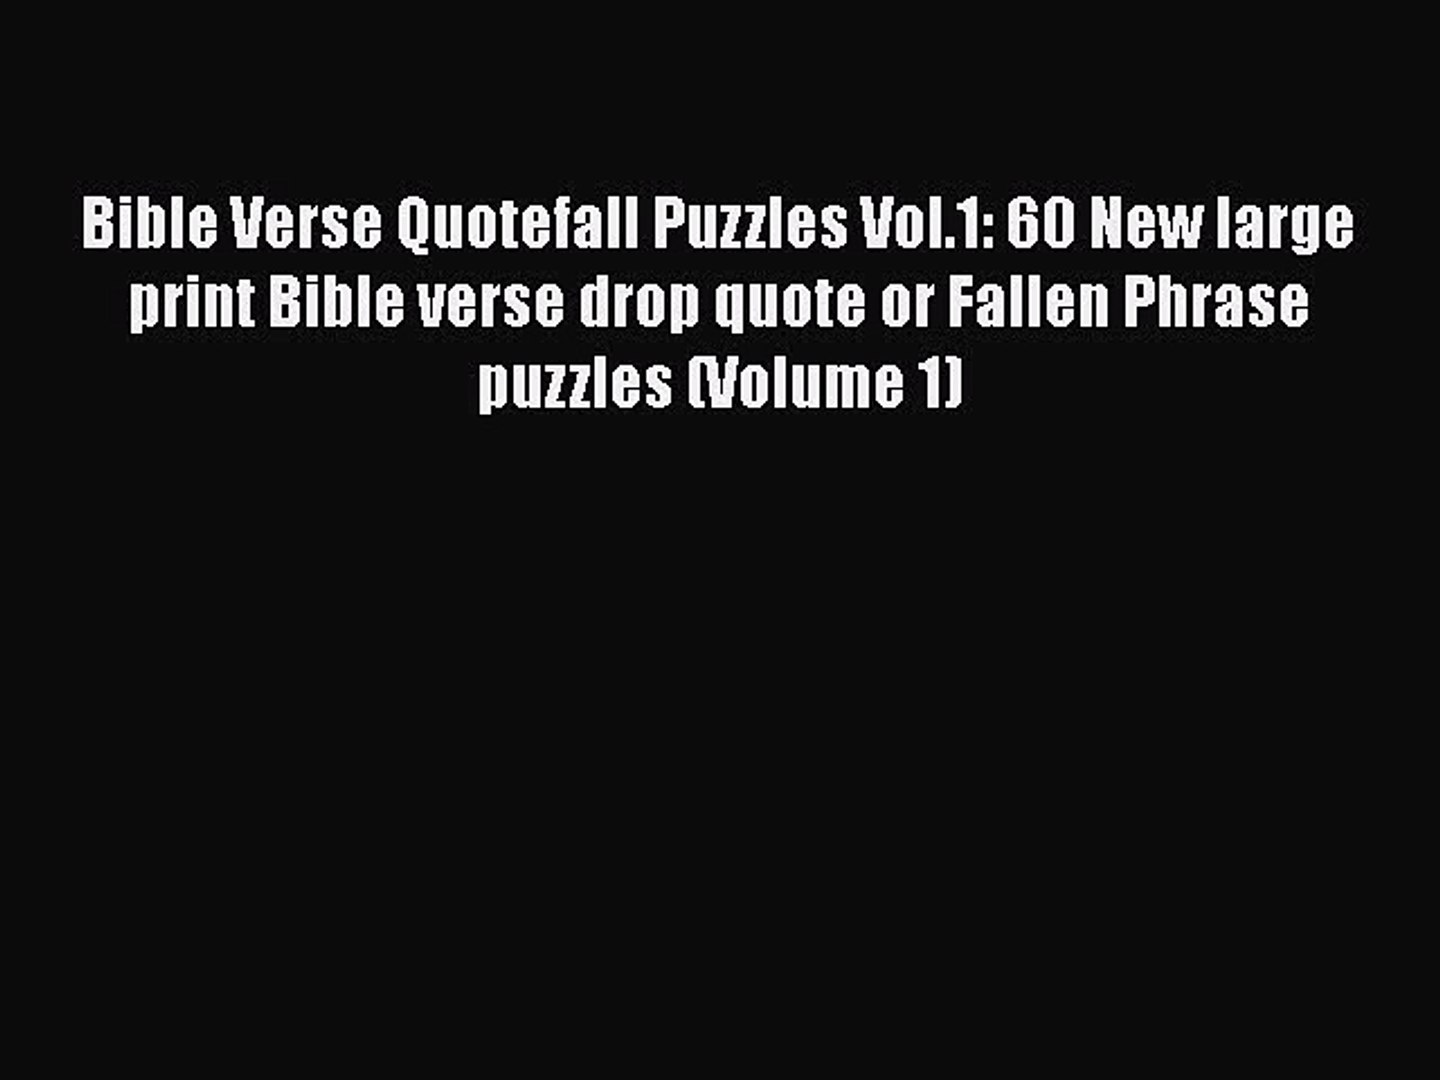 Read Bible Verse Quotefall Puzzles Vol.1: 60 New large print Bible verse drop quote or Fallen